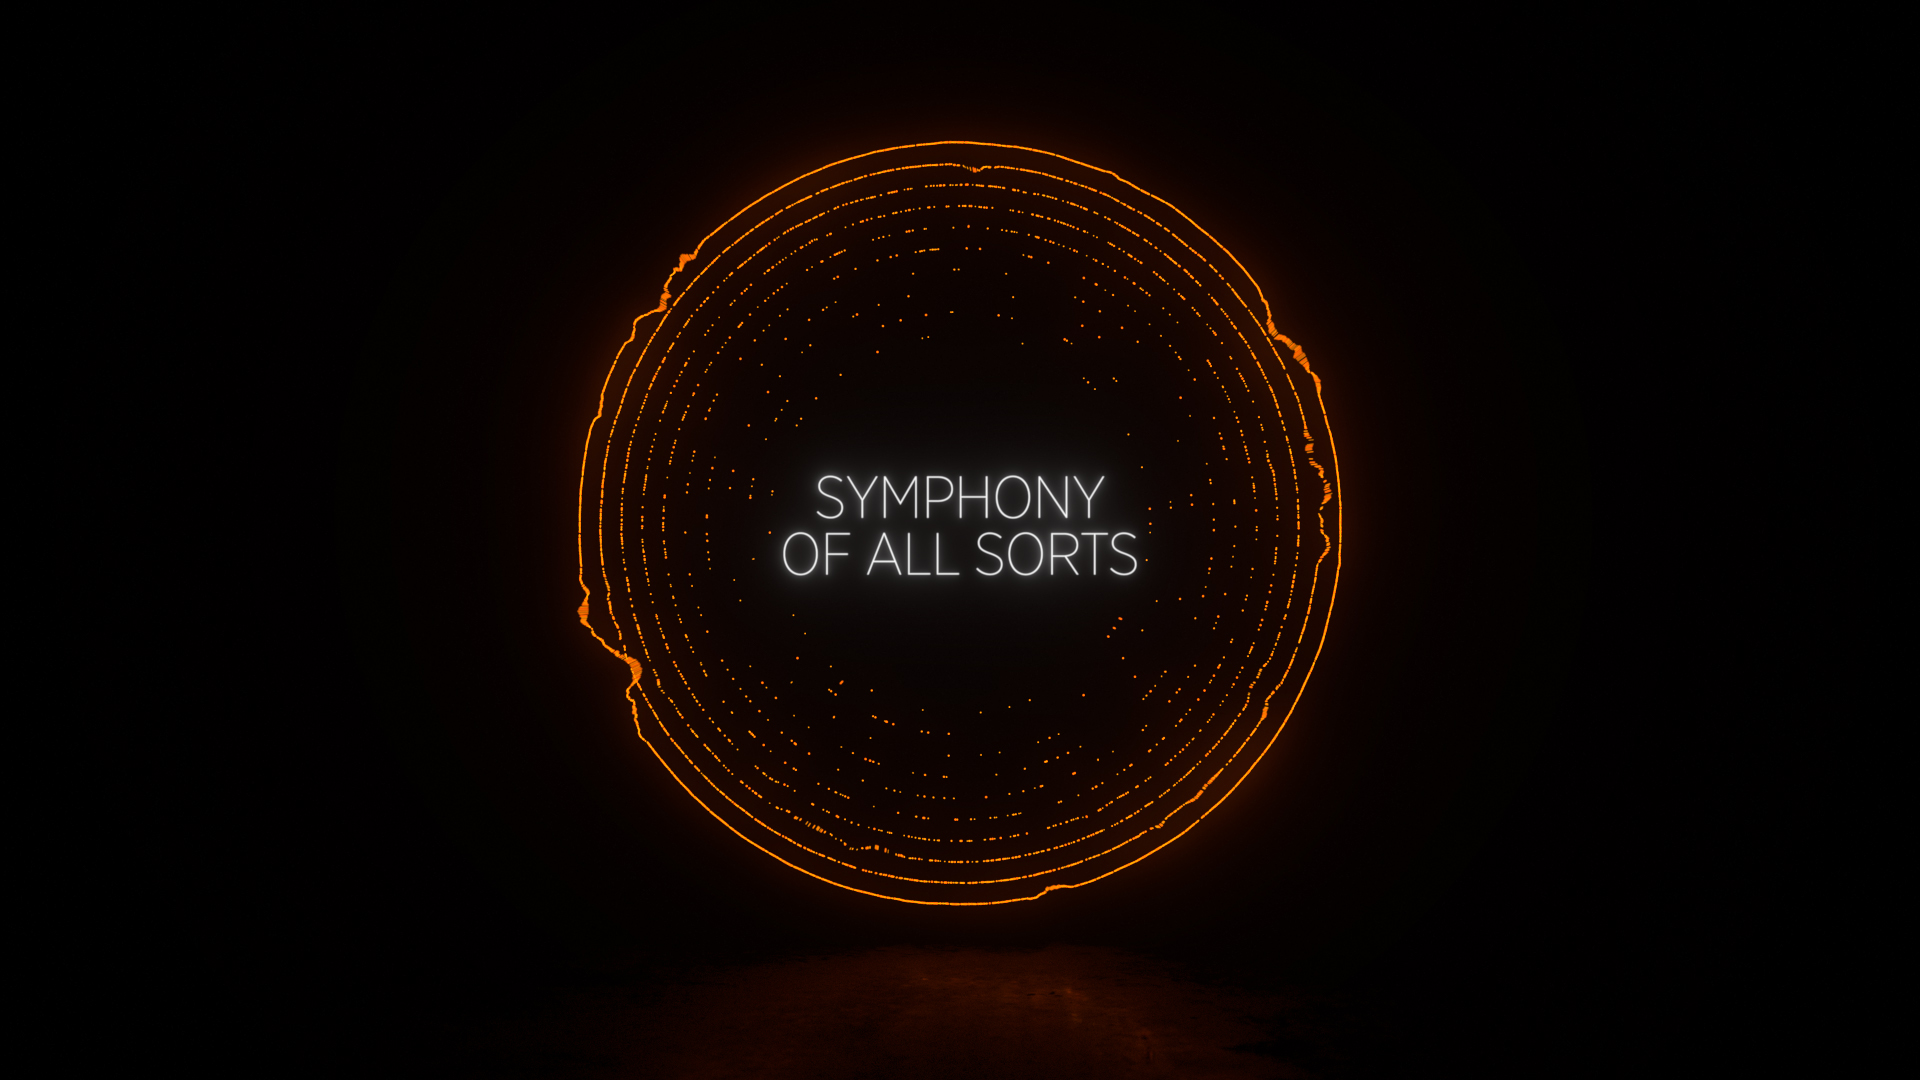 Symphny of all sorts